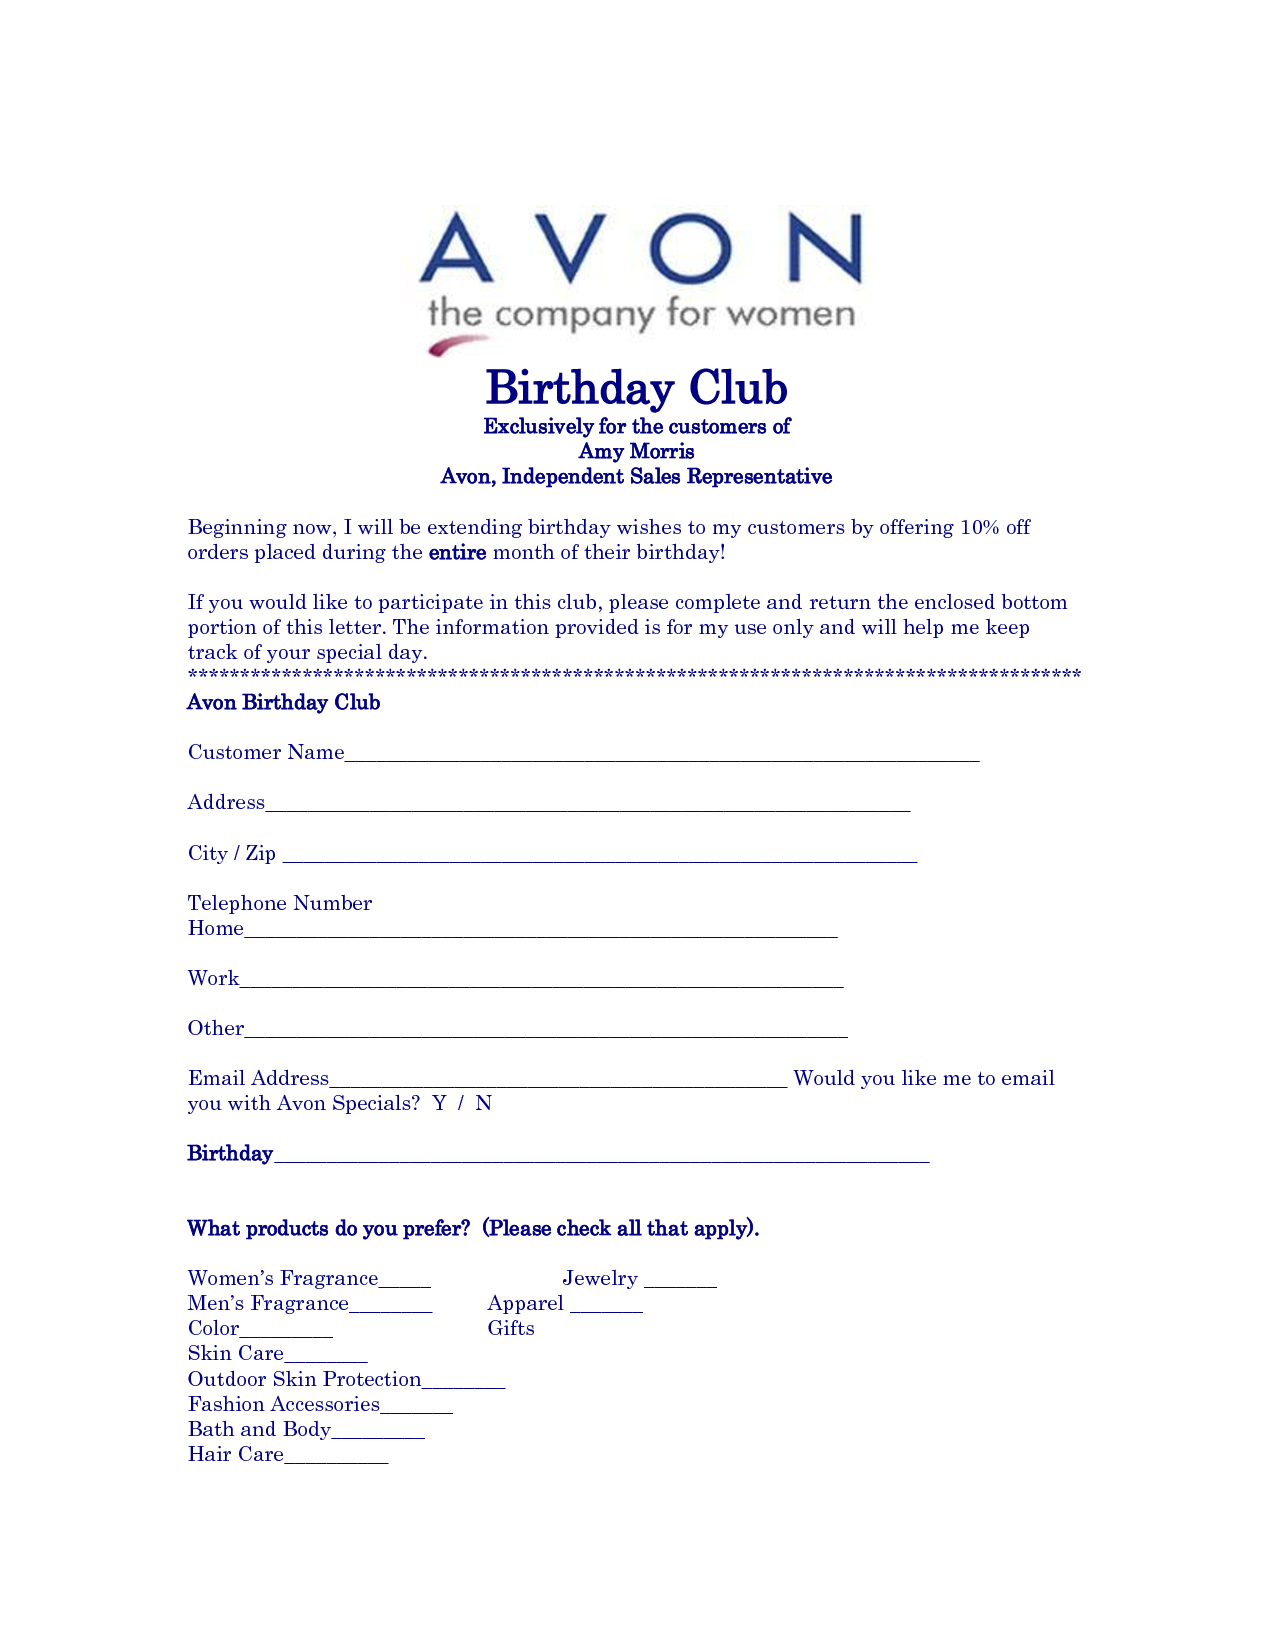 Avon Birthday Club  Avon    Birthday Club And Avon